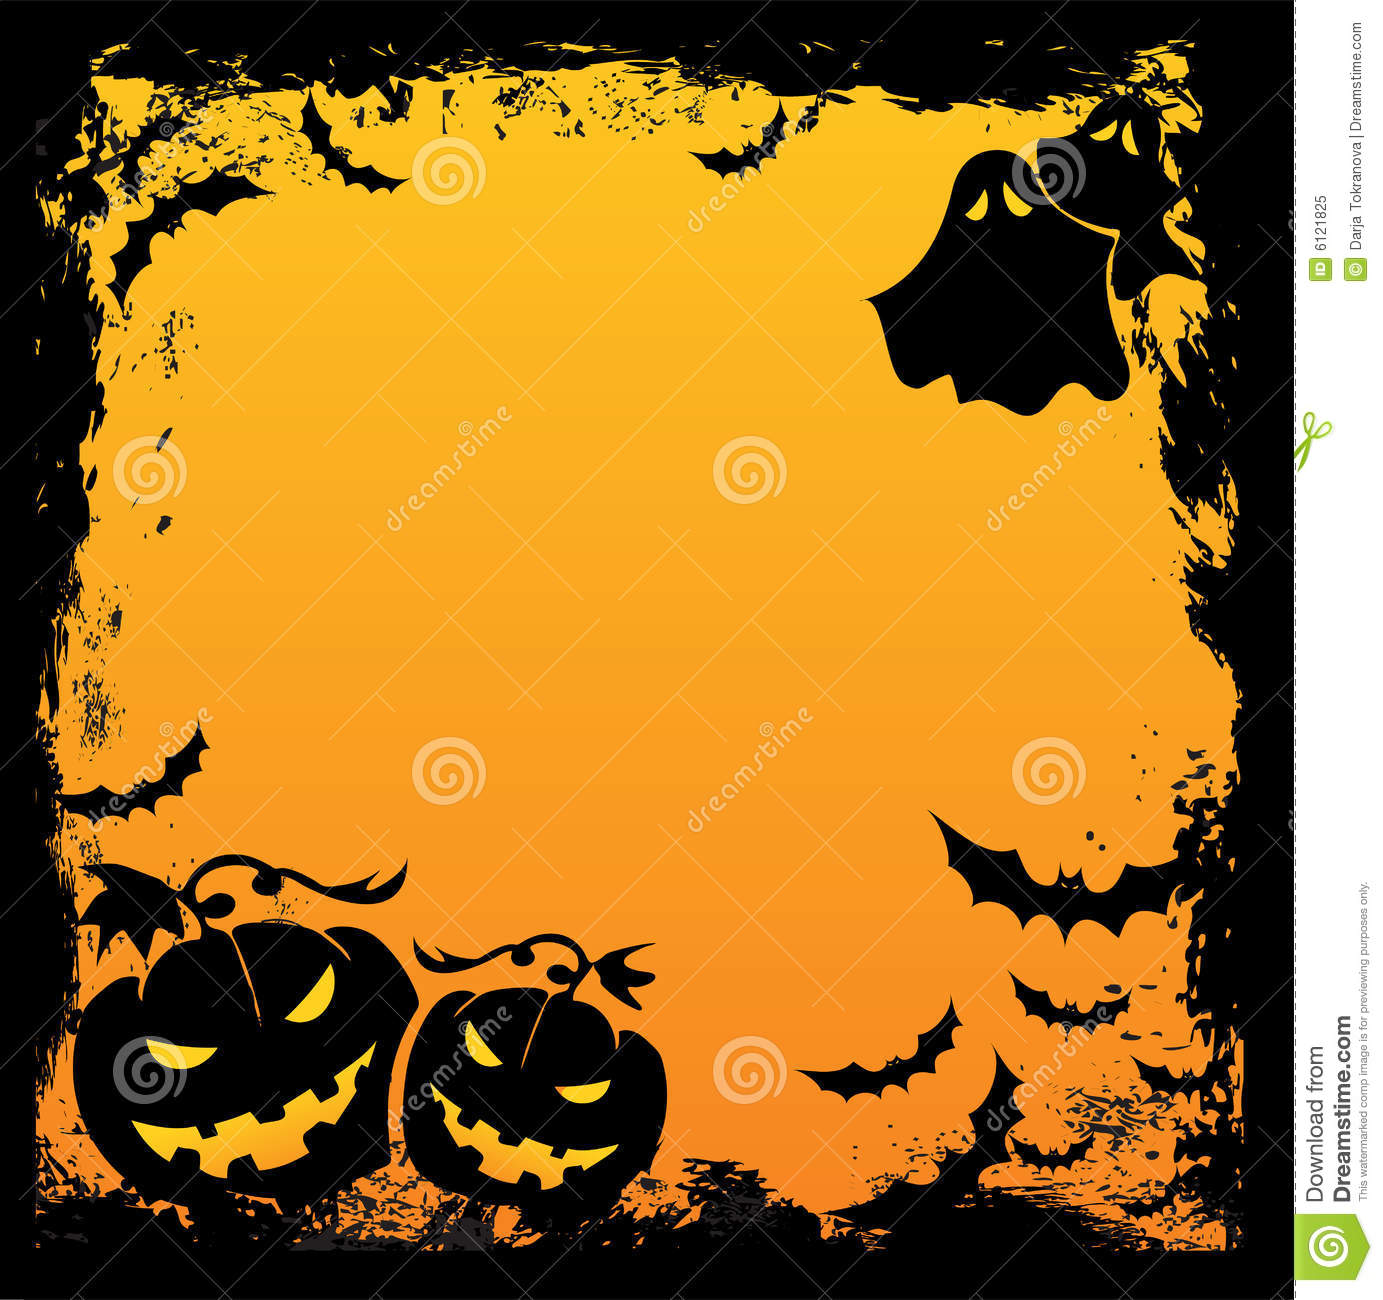 halloween background royalty free stock photo image 6121825 Fall Leaves Clip Art Outline Fall Leaves Clip Art Outline